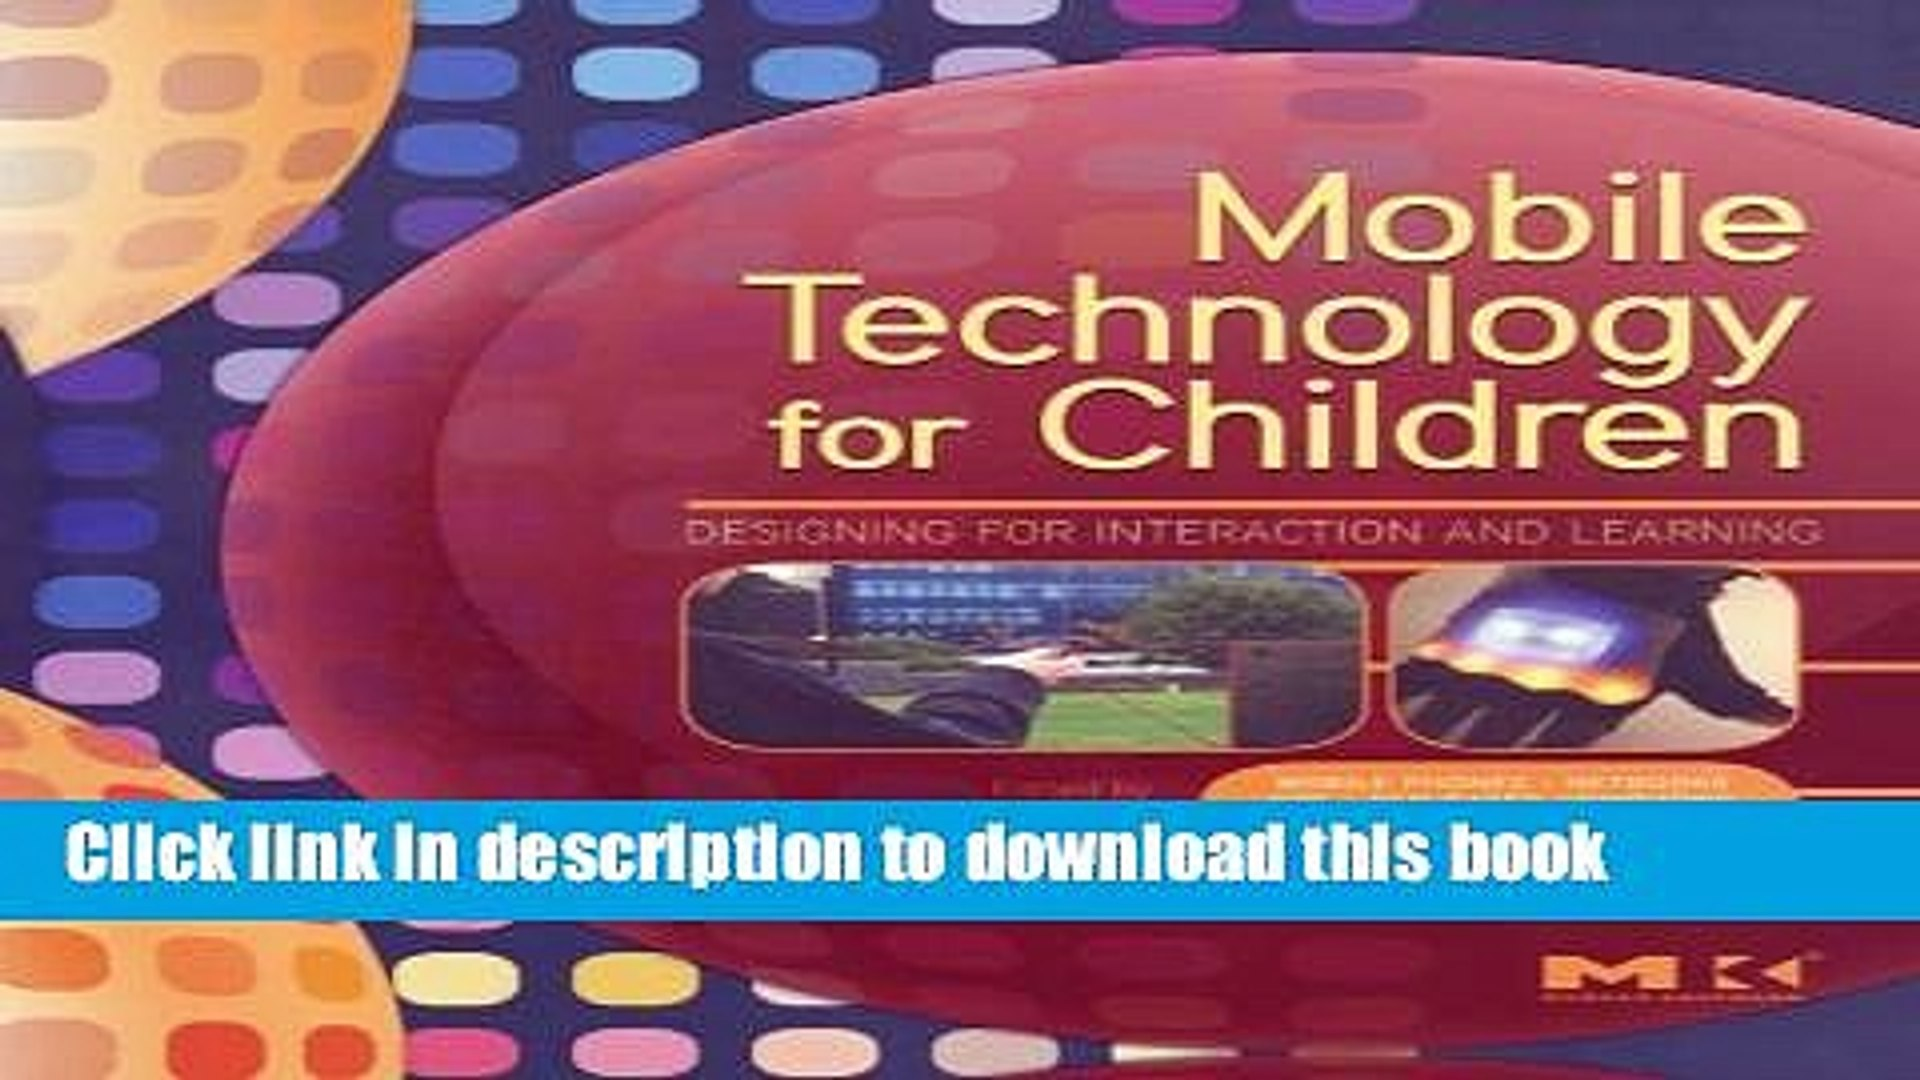 [Read PDF] Mobile Technology for Children: Designing for Interaction and Learning (Morgan Kaufmann